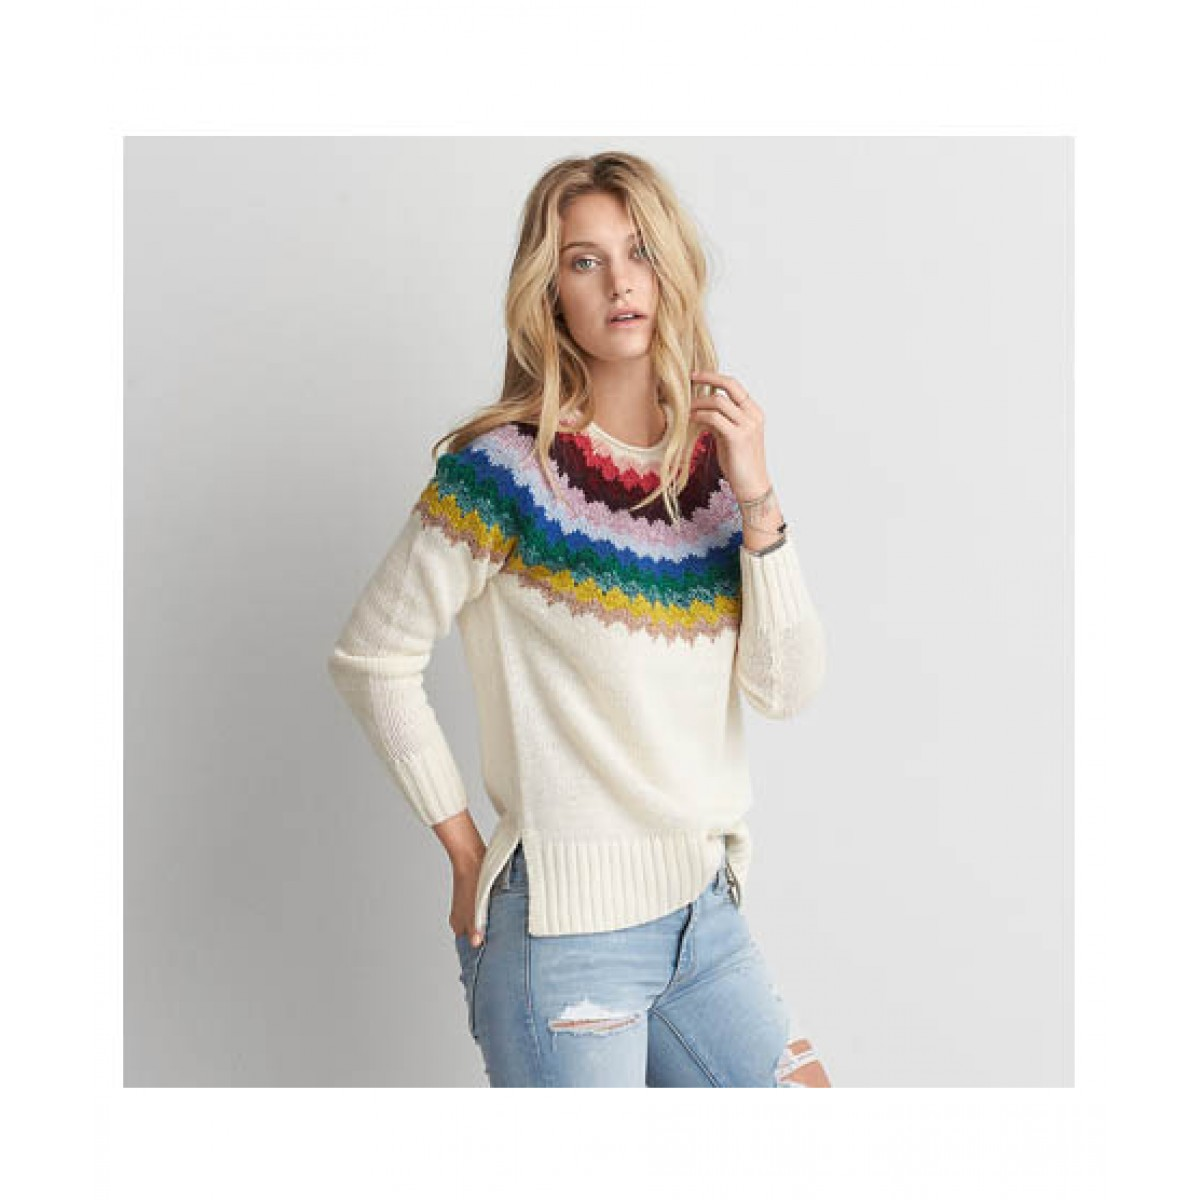 dcb11c698ed56 American Eagle AEO Patterned Women s Sweater Price in Pakistan